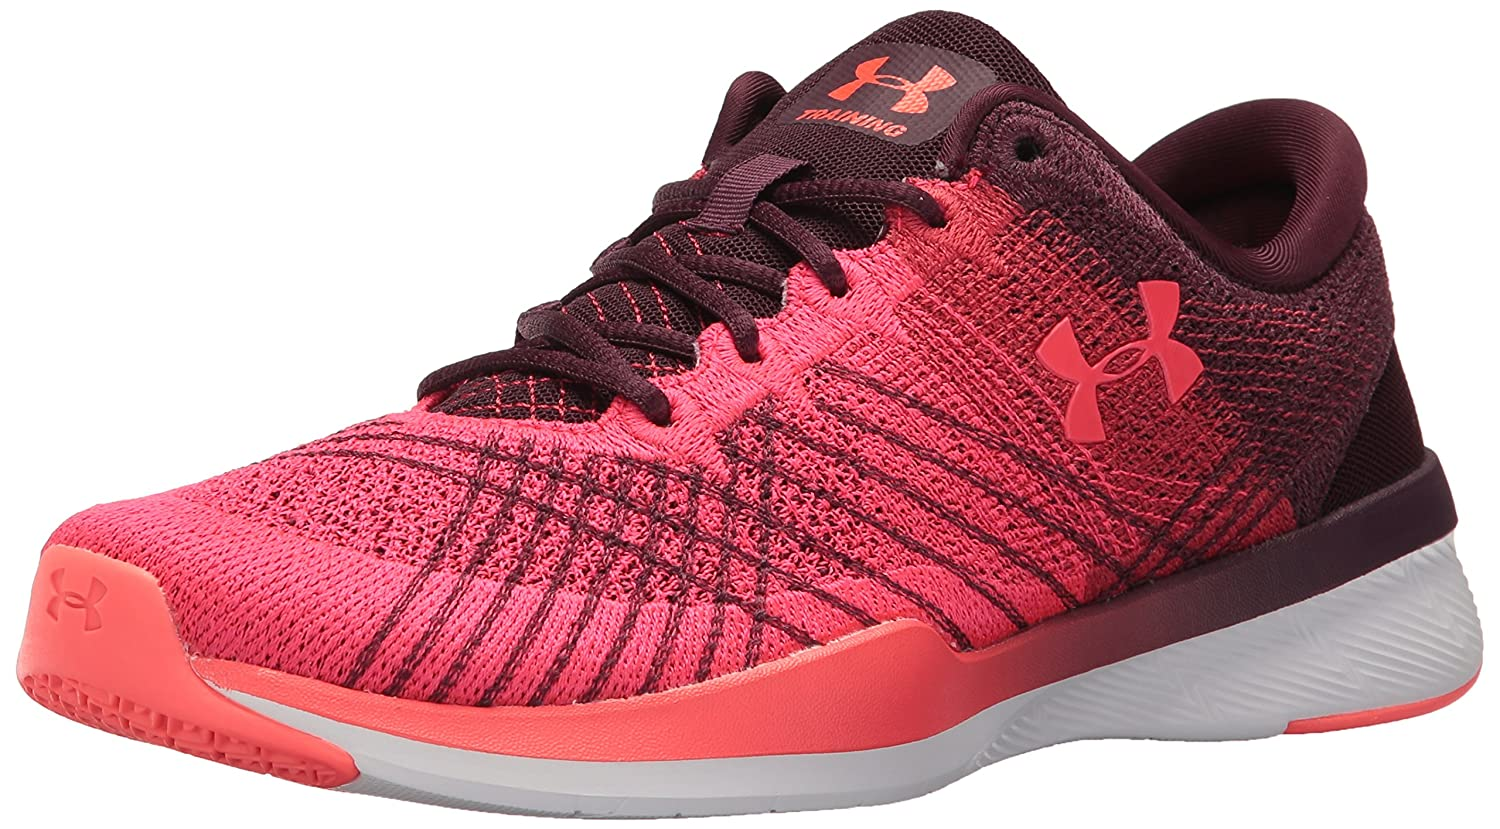 Under Armour Women's Threadborne Push Cross-Trainer Shoe B01MU0SKZF 10 M US|Raisin Red (500)/Red